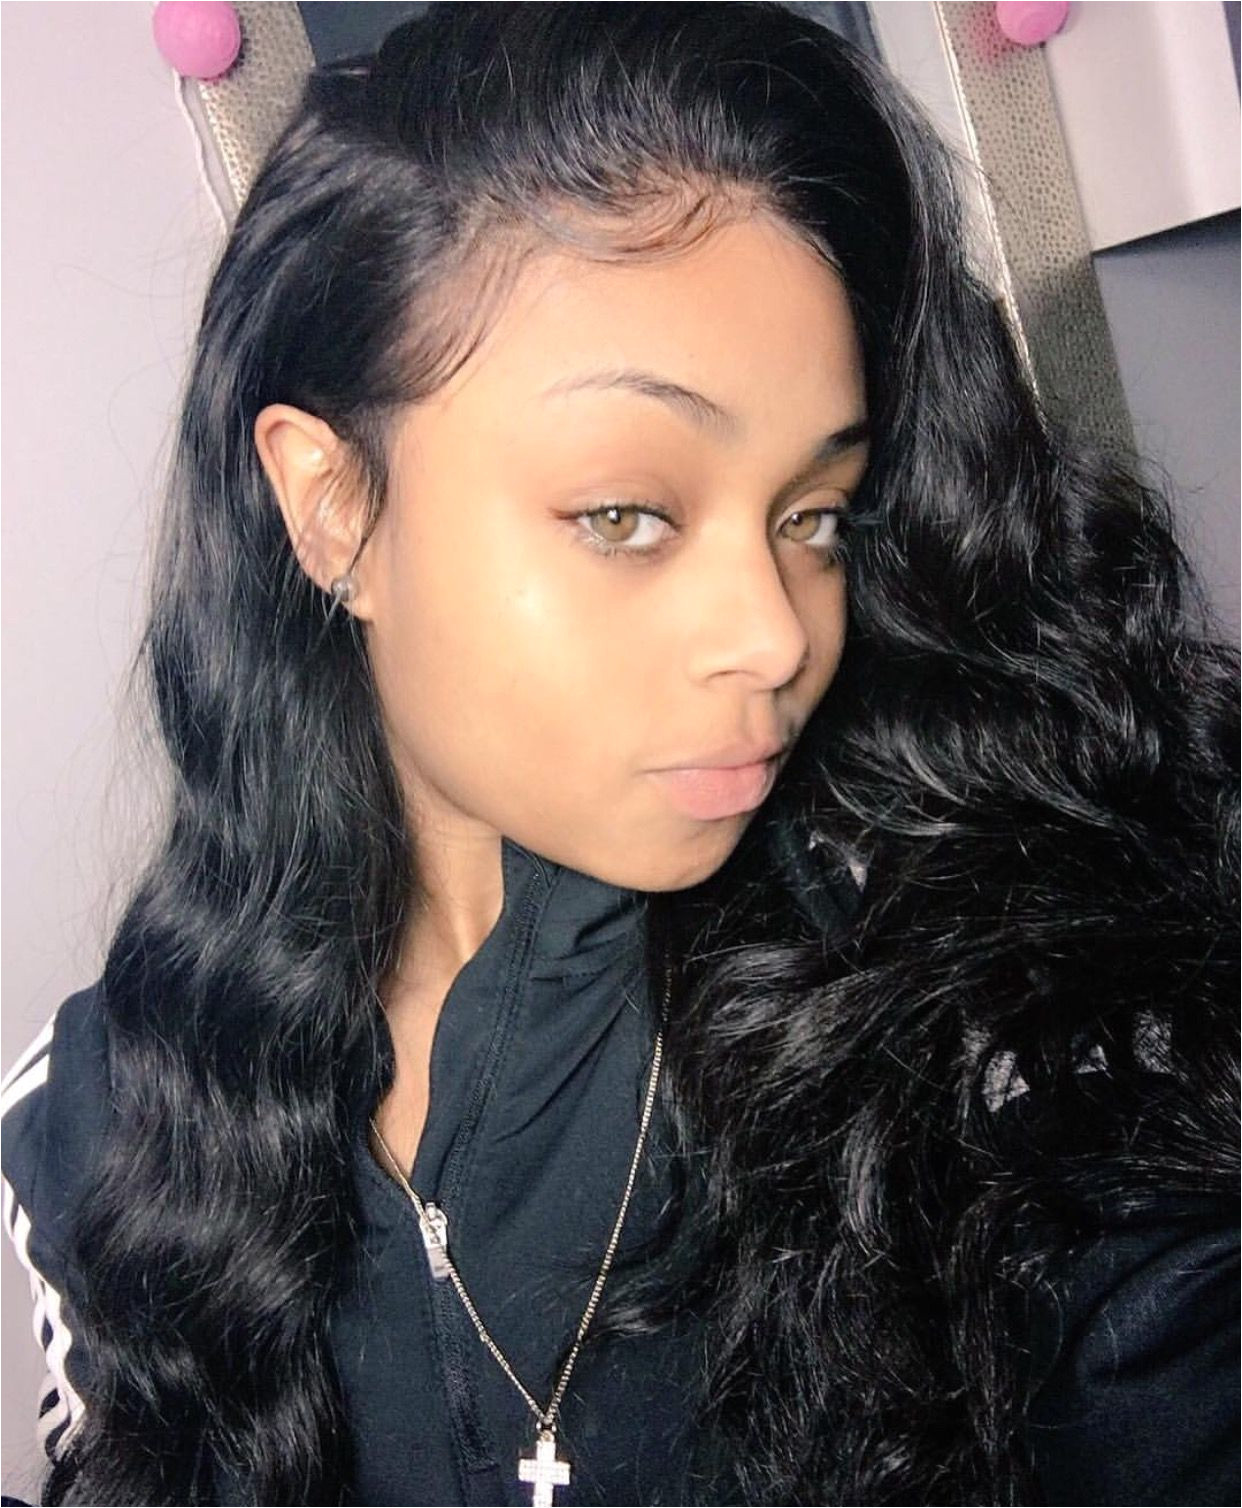 Black Hairstyles Online Body Wave Sew In with Frontal Closure Hairstyles for Black Girls